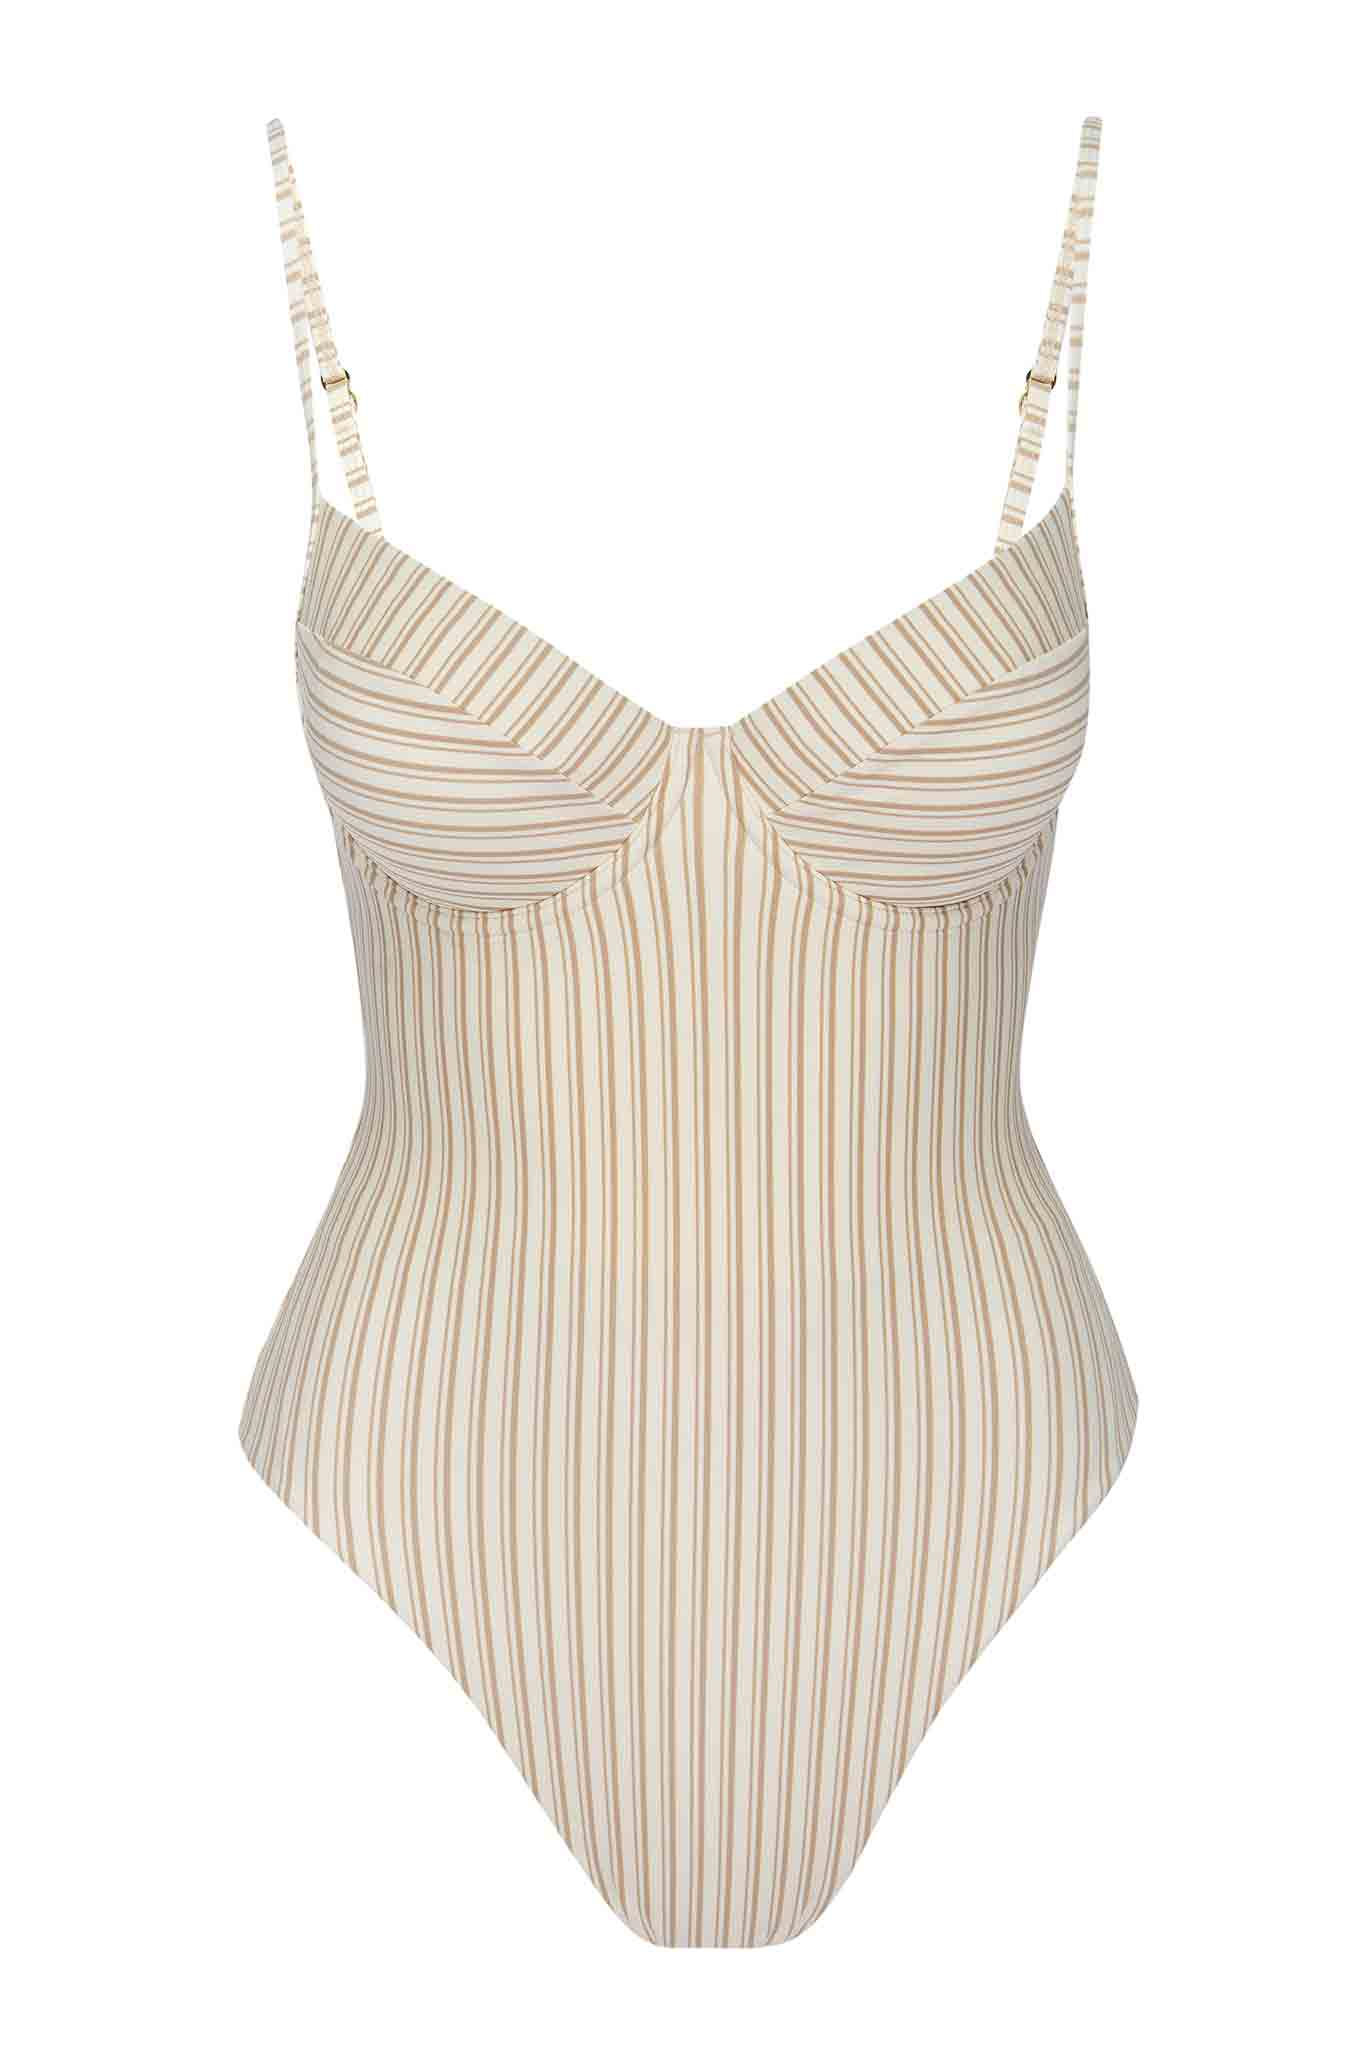 Load image into Gallery viewer, Maui One Piece - Sand Stripe